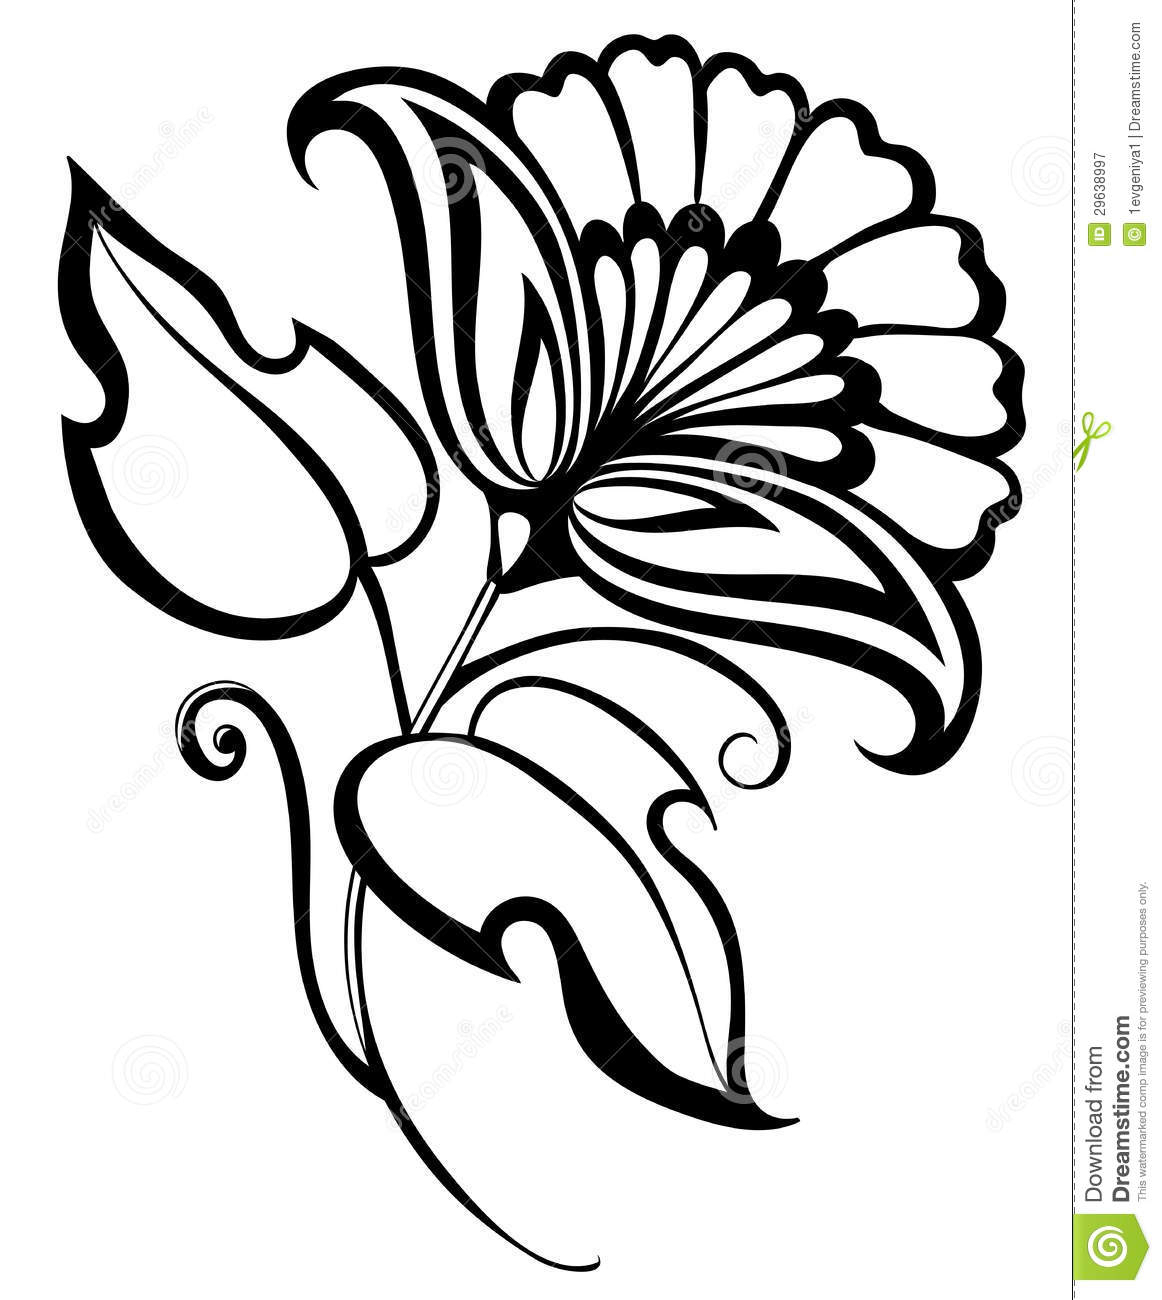 1162x1300 3d Hd Flower Pic Simple Draw 3d Pictures Simple Drawing